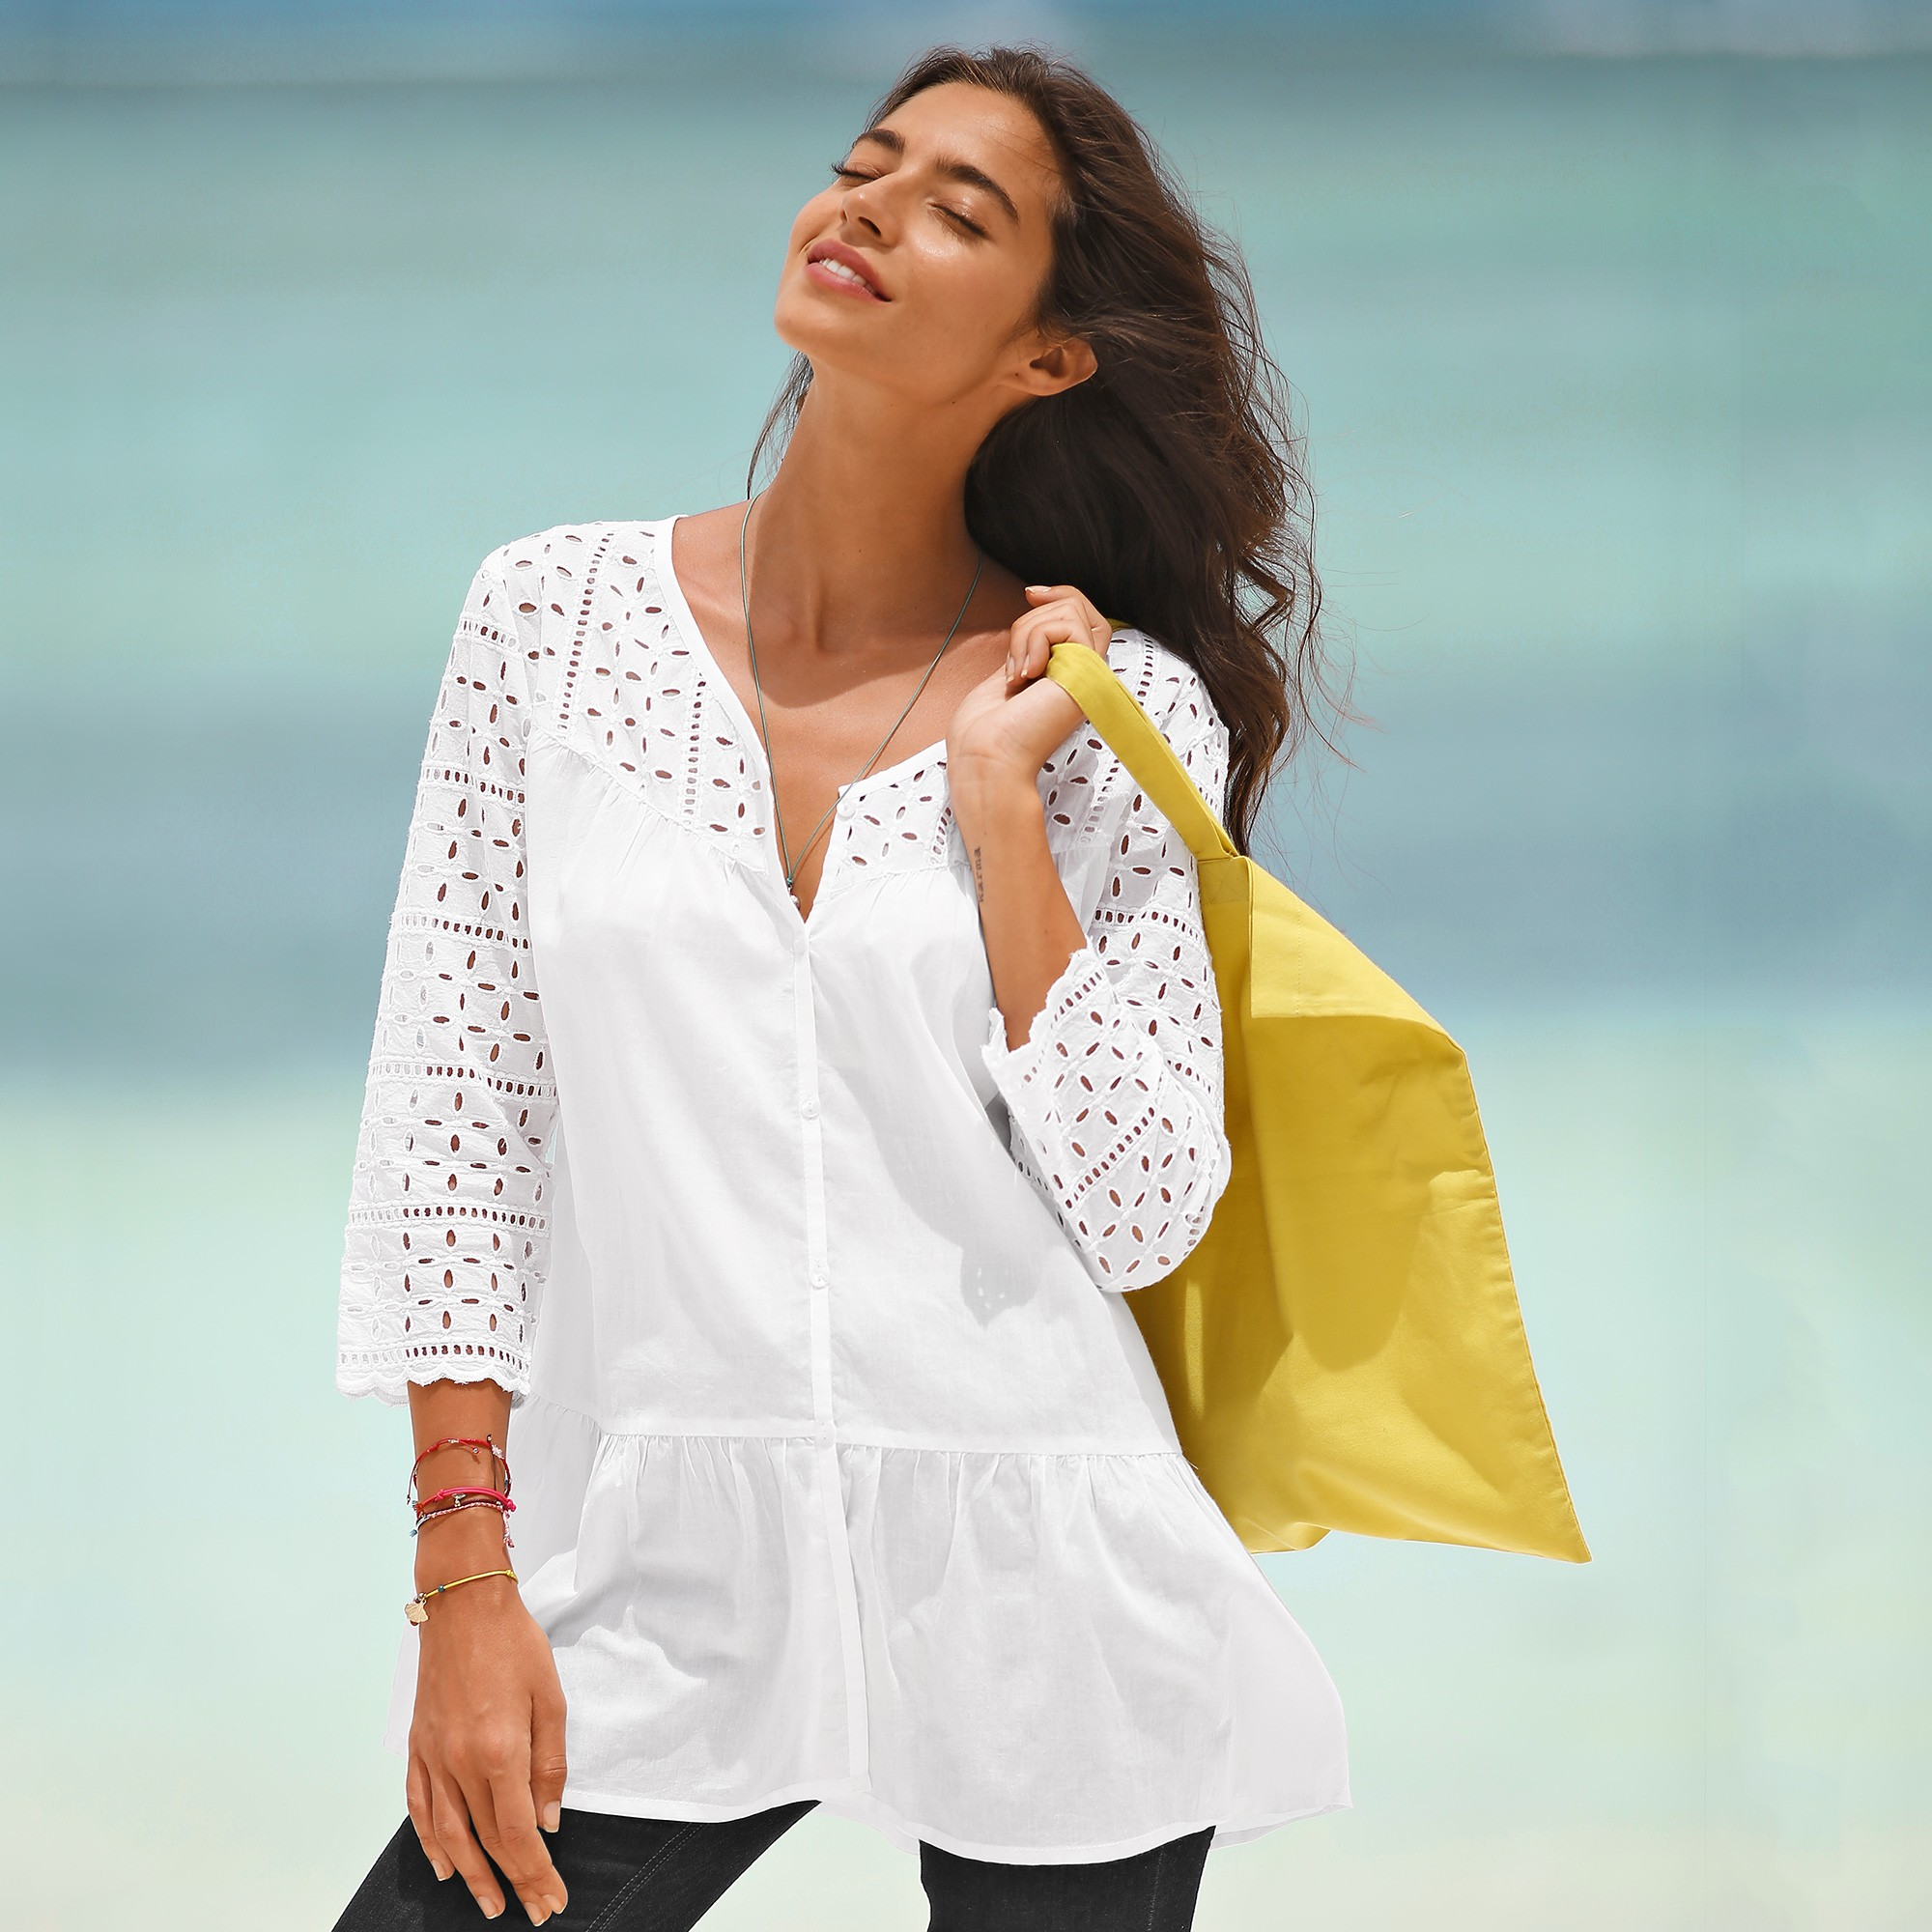 Le Meilleur Blouse Manches 3 4 Broderie Anglaise Blancheporte Ce Mois Ci